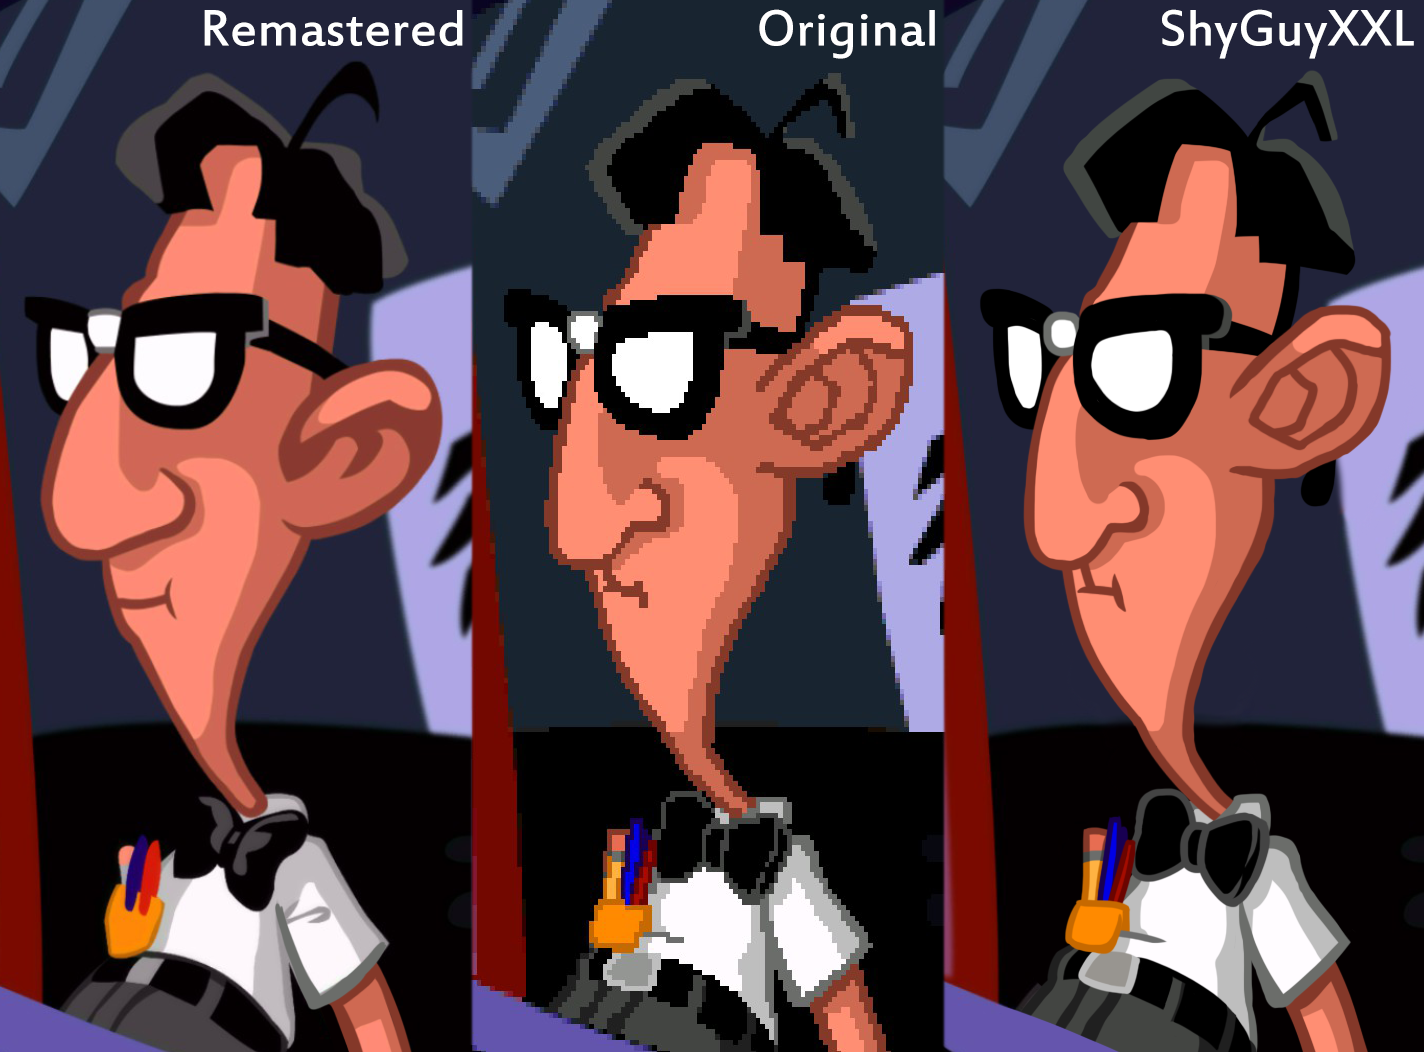 shyguyxxl_s_interpretation_by_shyguyxxl-d9y38wt.png